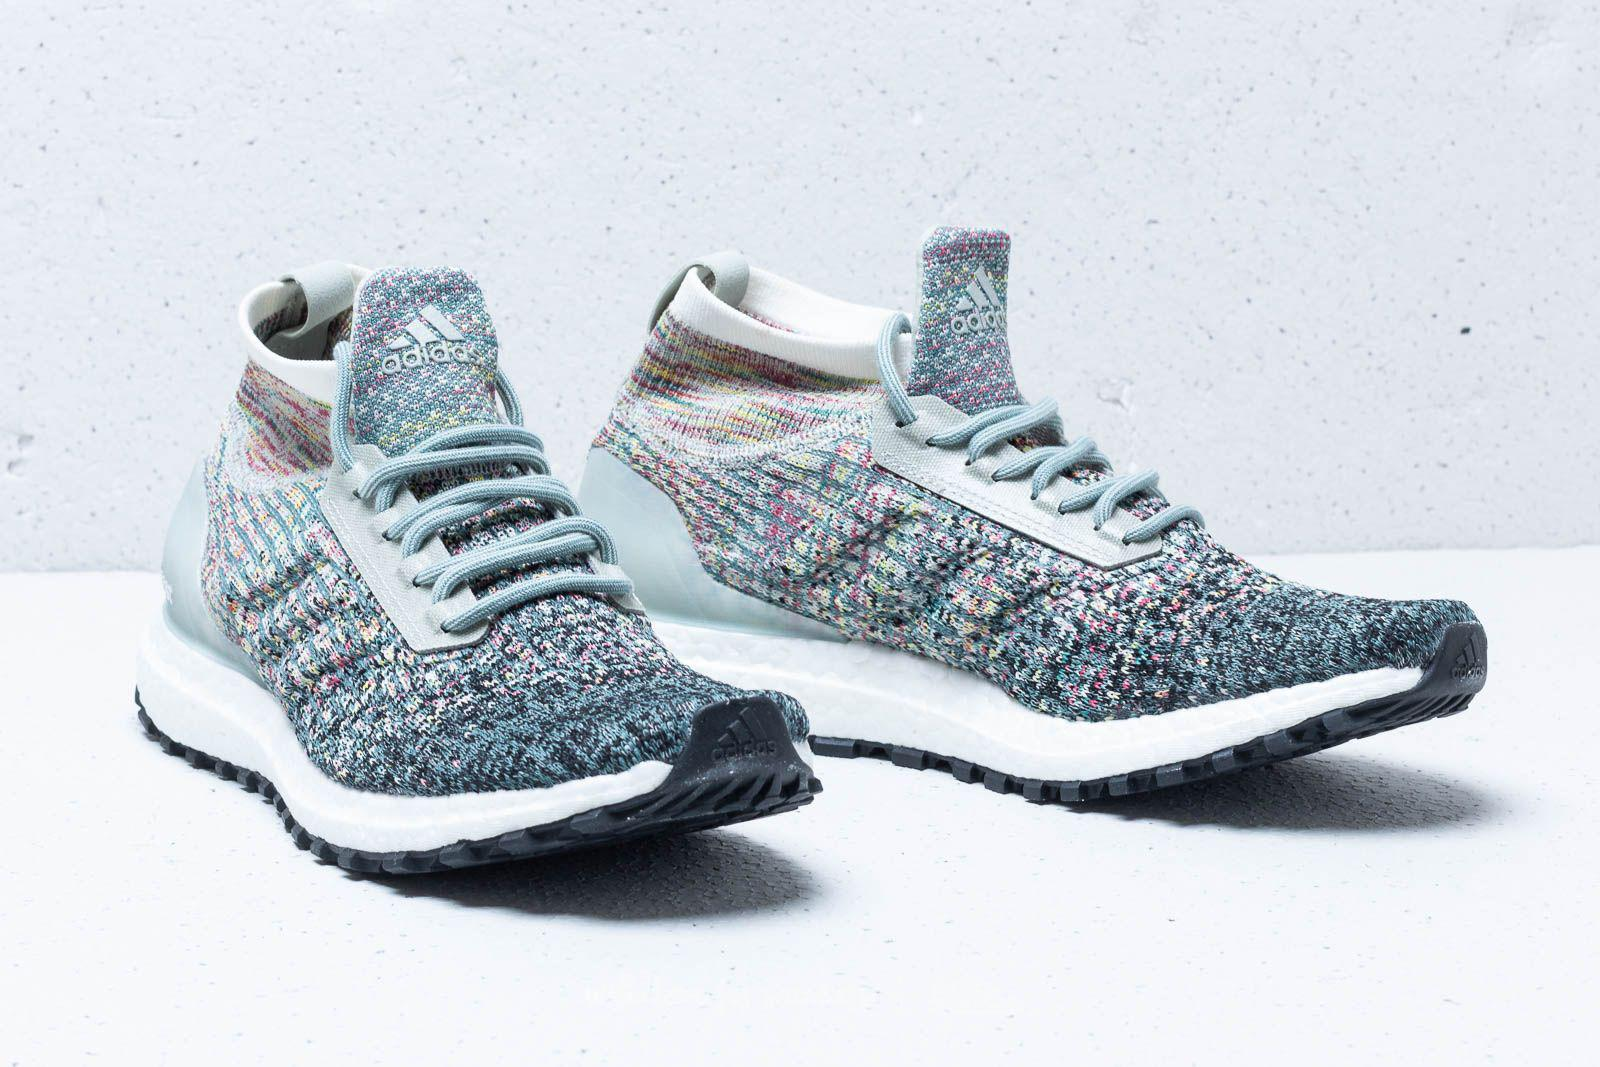 db13cff8e155e Lyst - Footshop Adidas Ultraboost All Terrain Ltd Ash Silver  Carbon ...